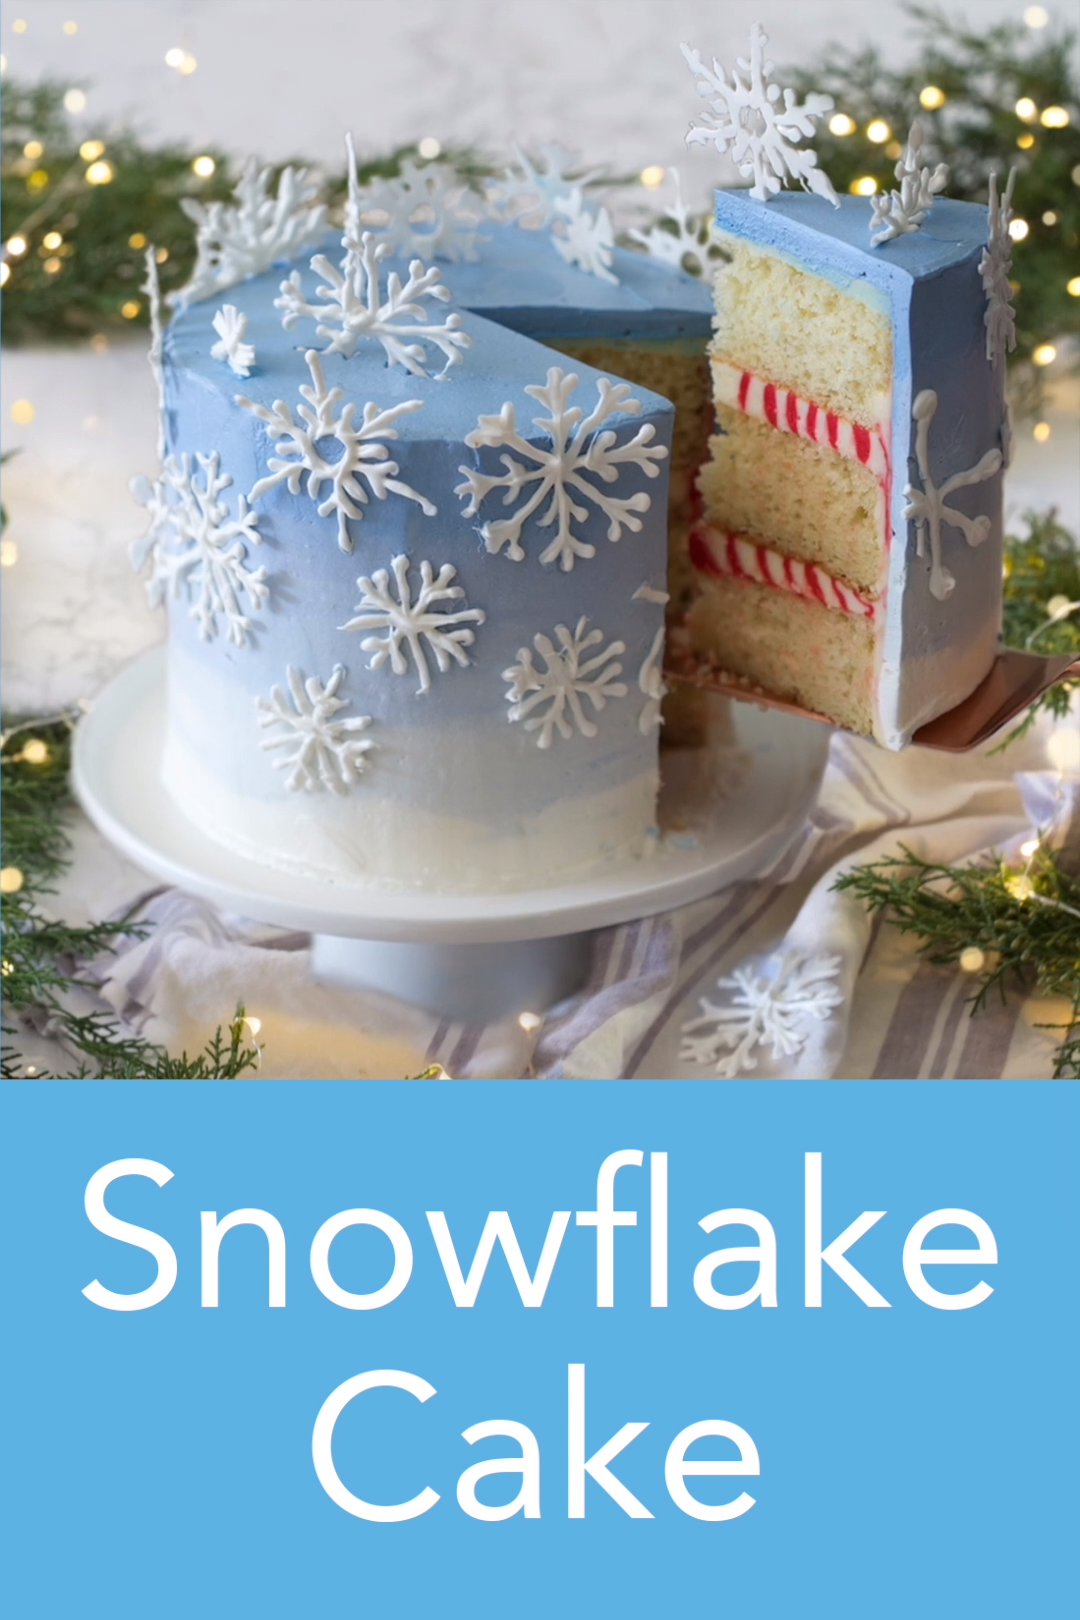 Snowflake Cake -   15 cake Art fun ideas